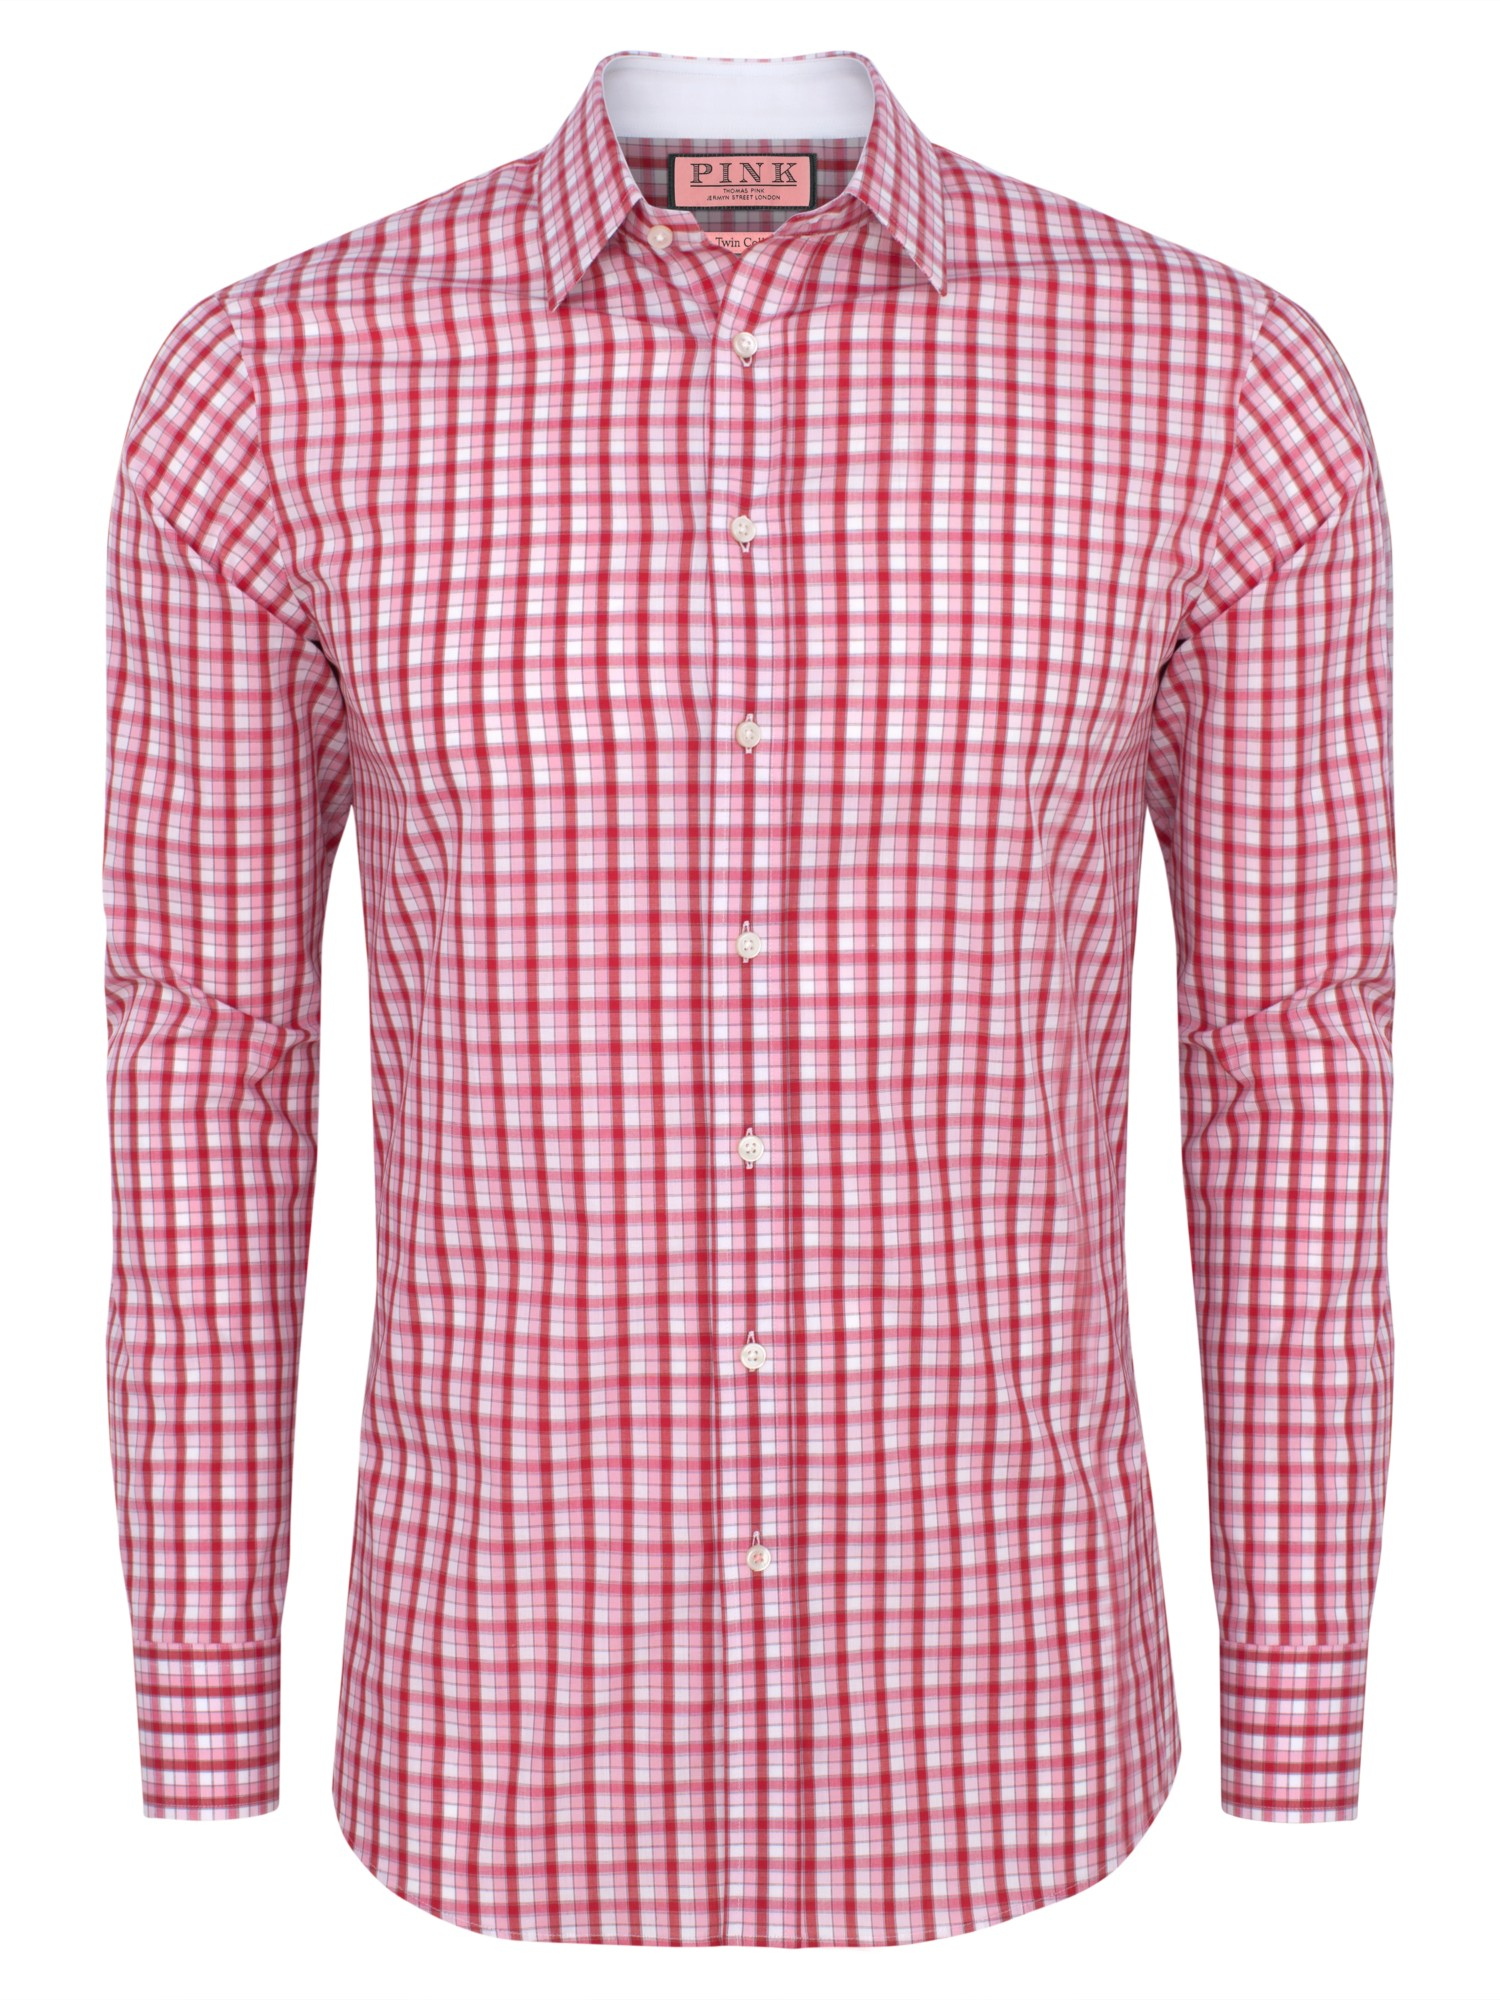 Thomas Pink Laces Slim Check Shirt In Pink For Men White